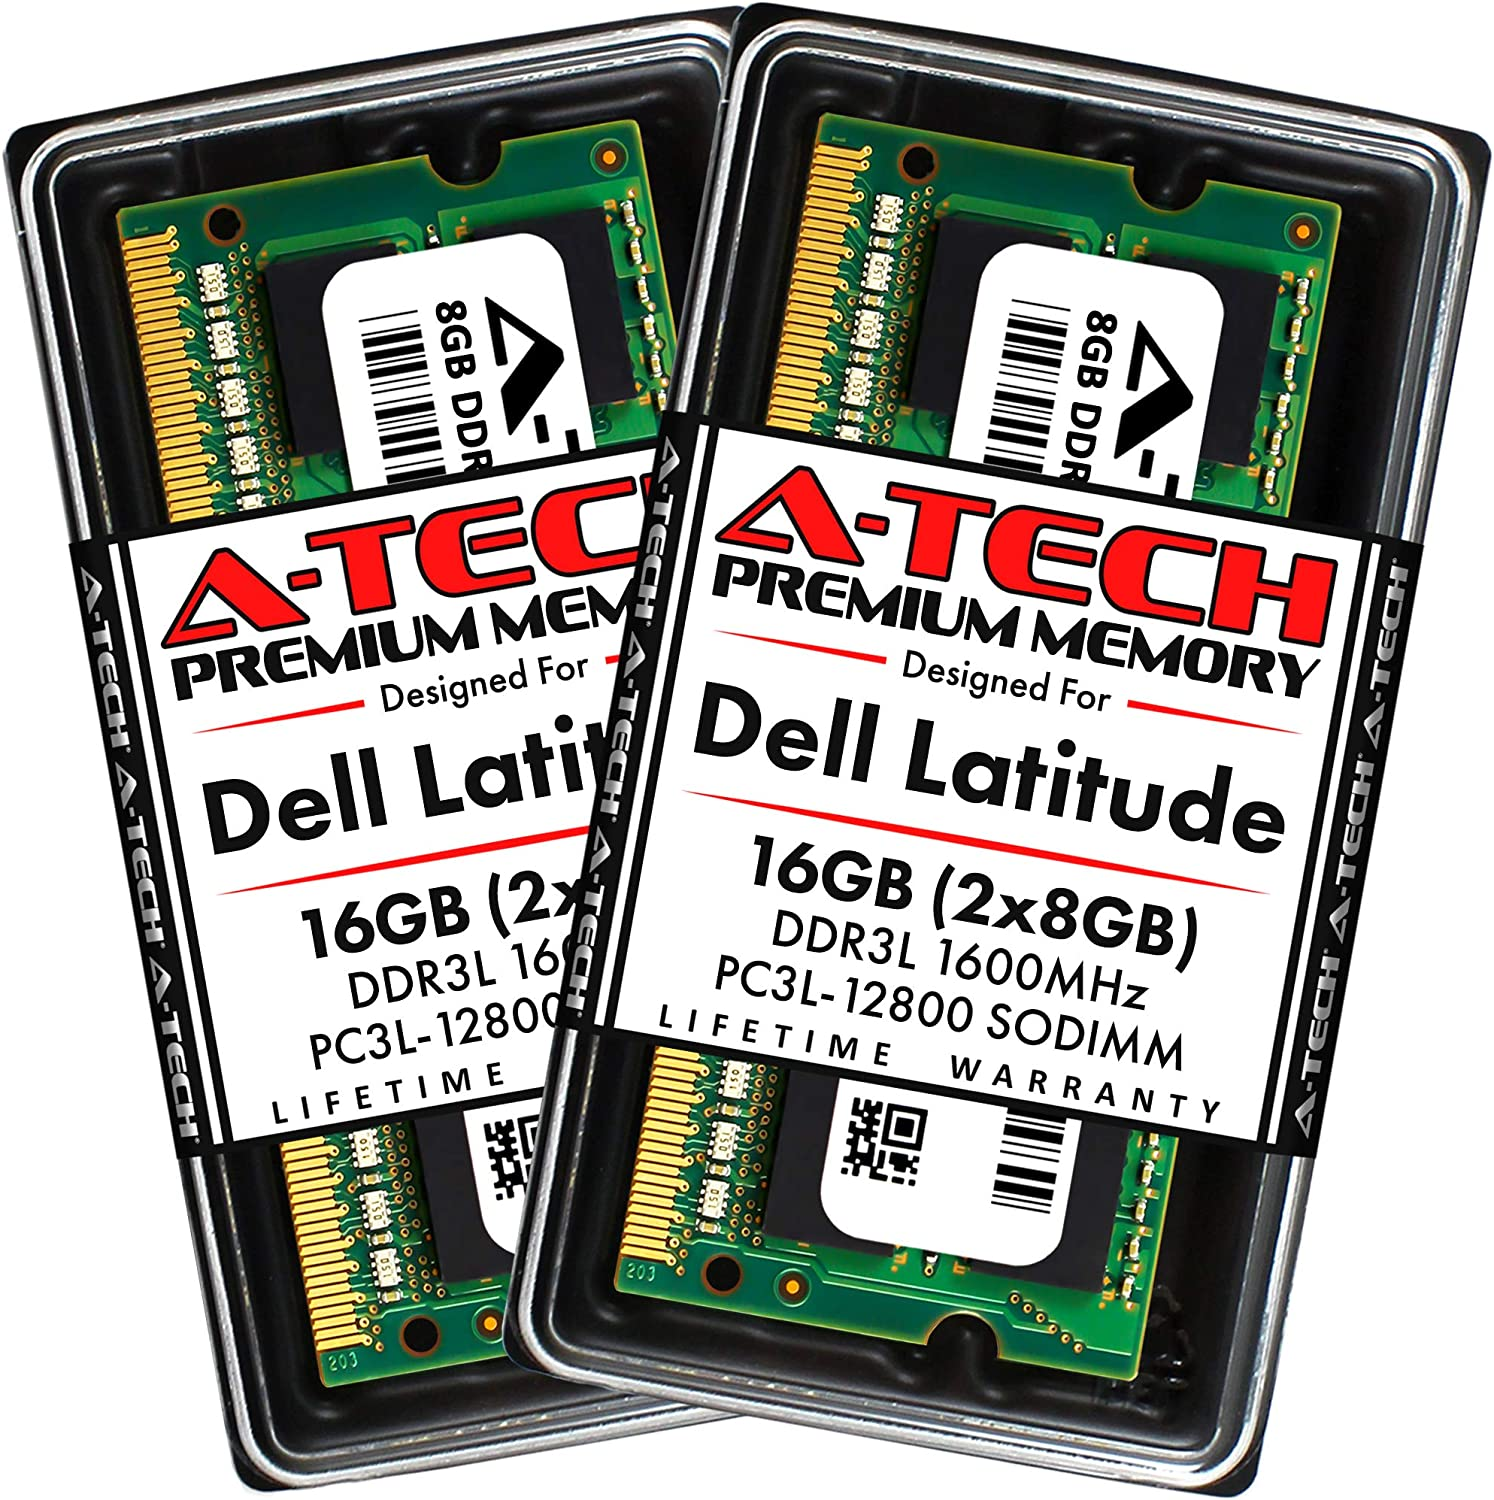 A-Tech 16GB (2x8GB) RAM for Dell Latitude E7440, E7240, E6540, E6440, E5540, E5440 | DDR3/DDR3L 1600MHz SODIMM PC3L-12800 Laptop Memory Upgrade Kit